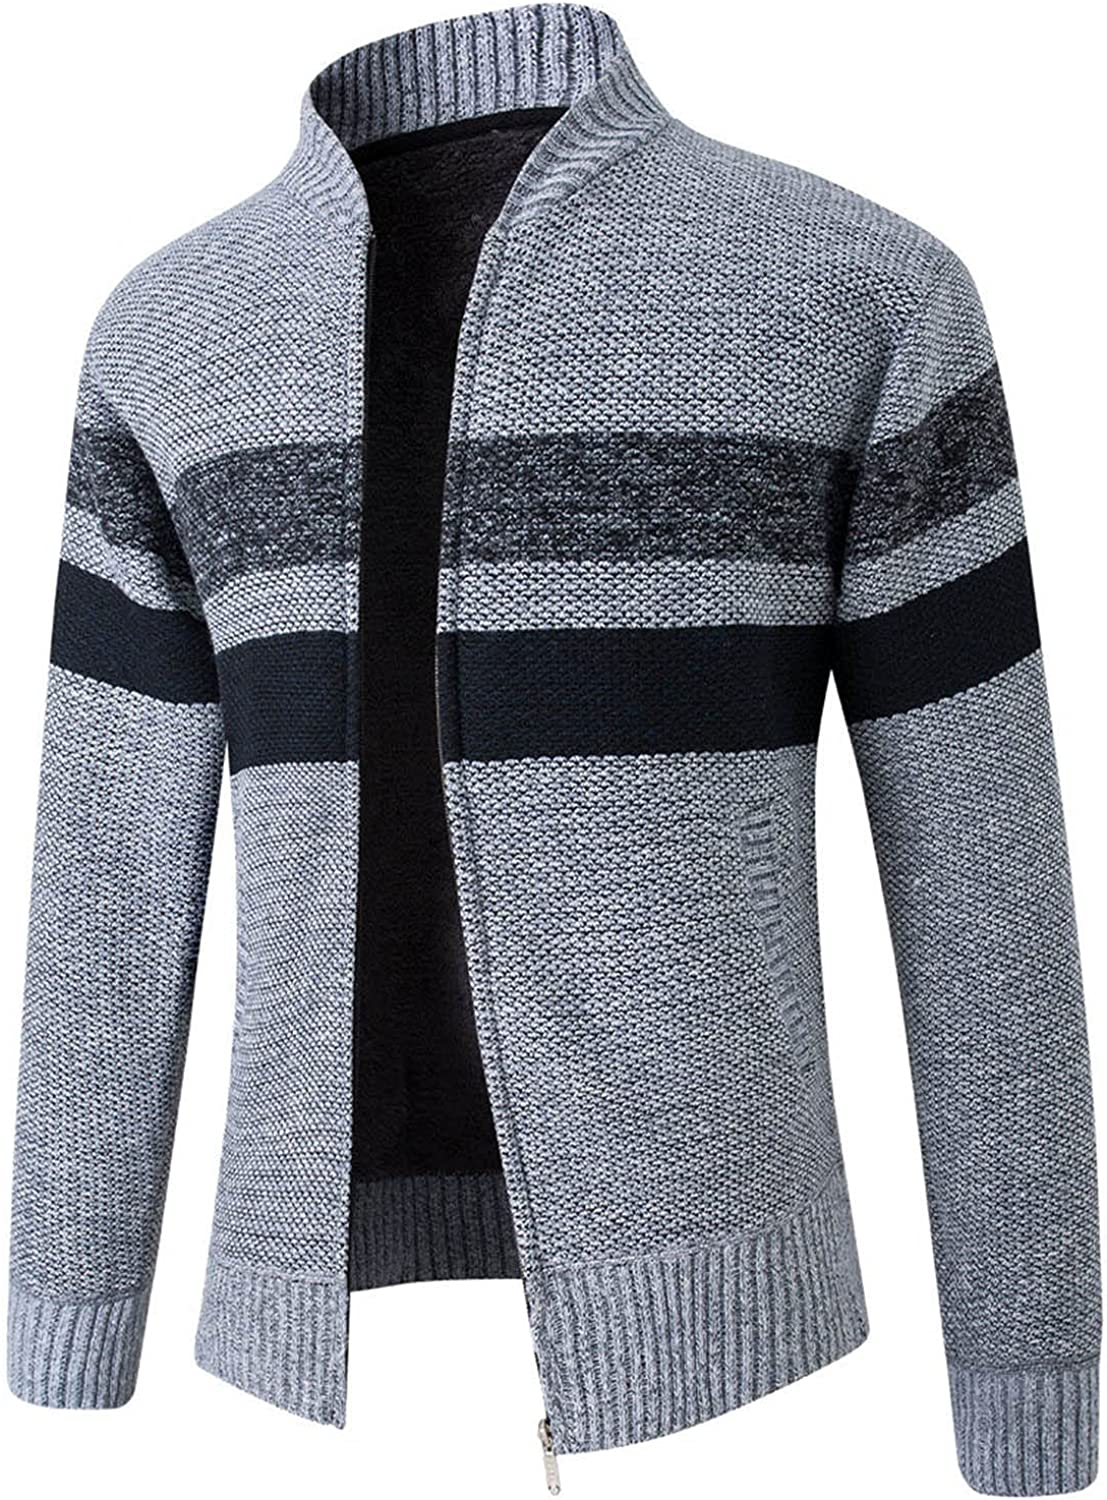 HONGJ Sweater Jackets for Mens, Zipper Stand-up Collar Knitted Cardigan Coat Long Sleeve Color Block Patchwork Outerwear